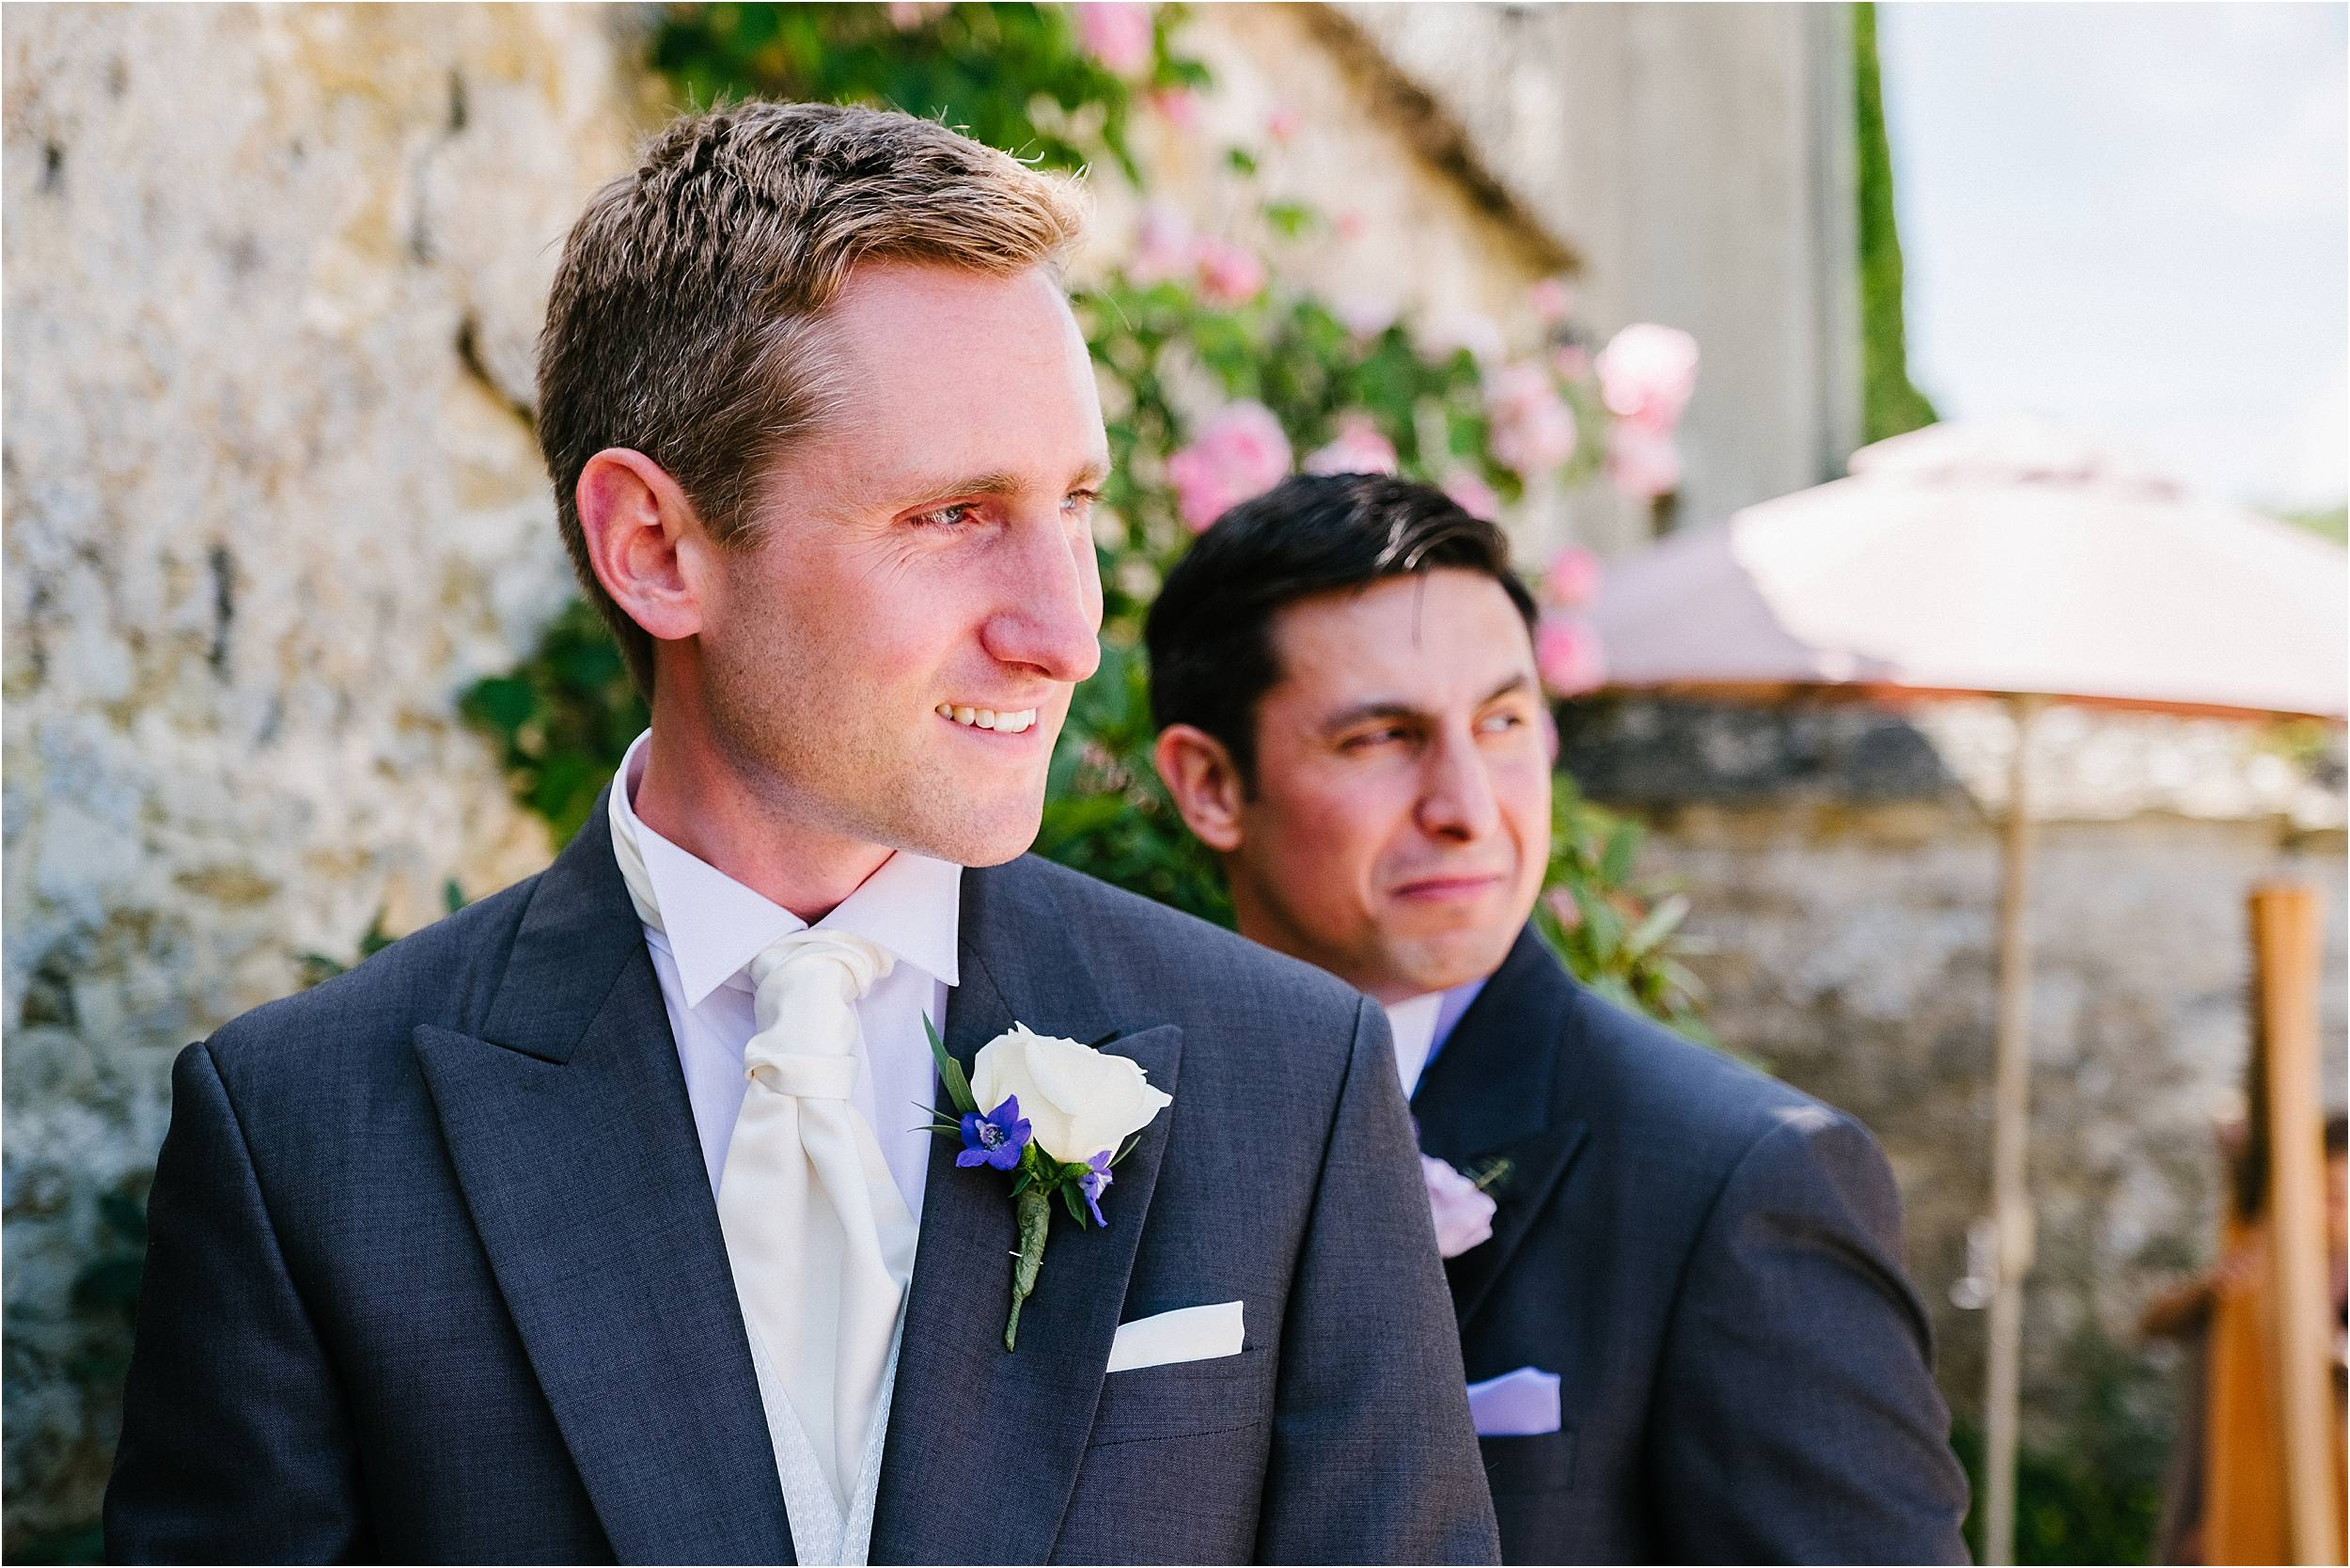 Caswell House Oxfordshire Wedding Photographer_0104.jpg